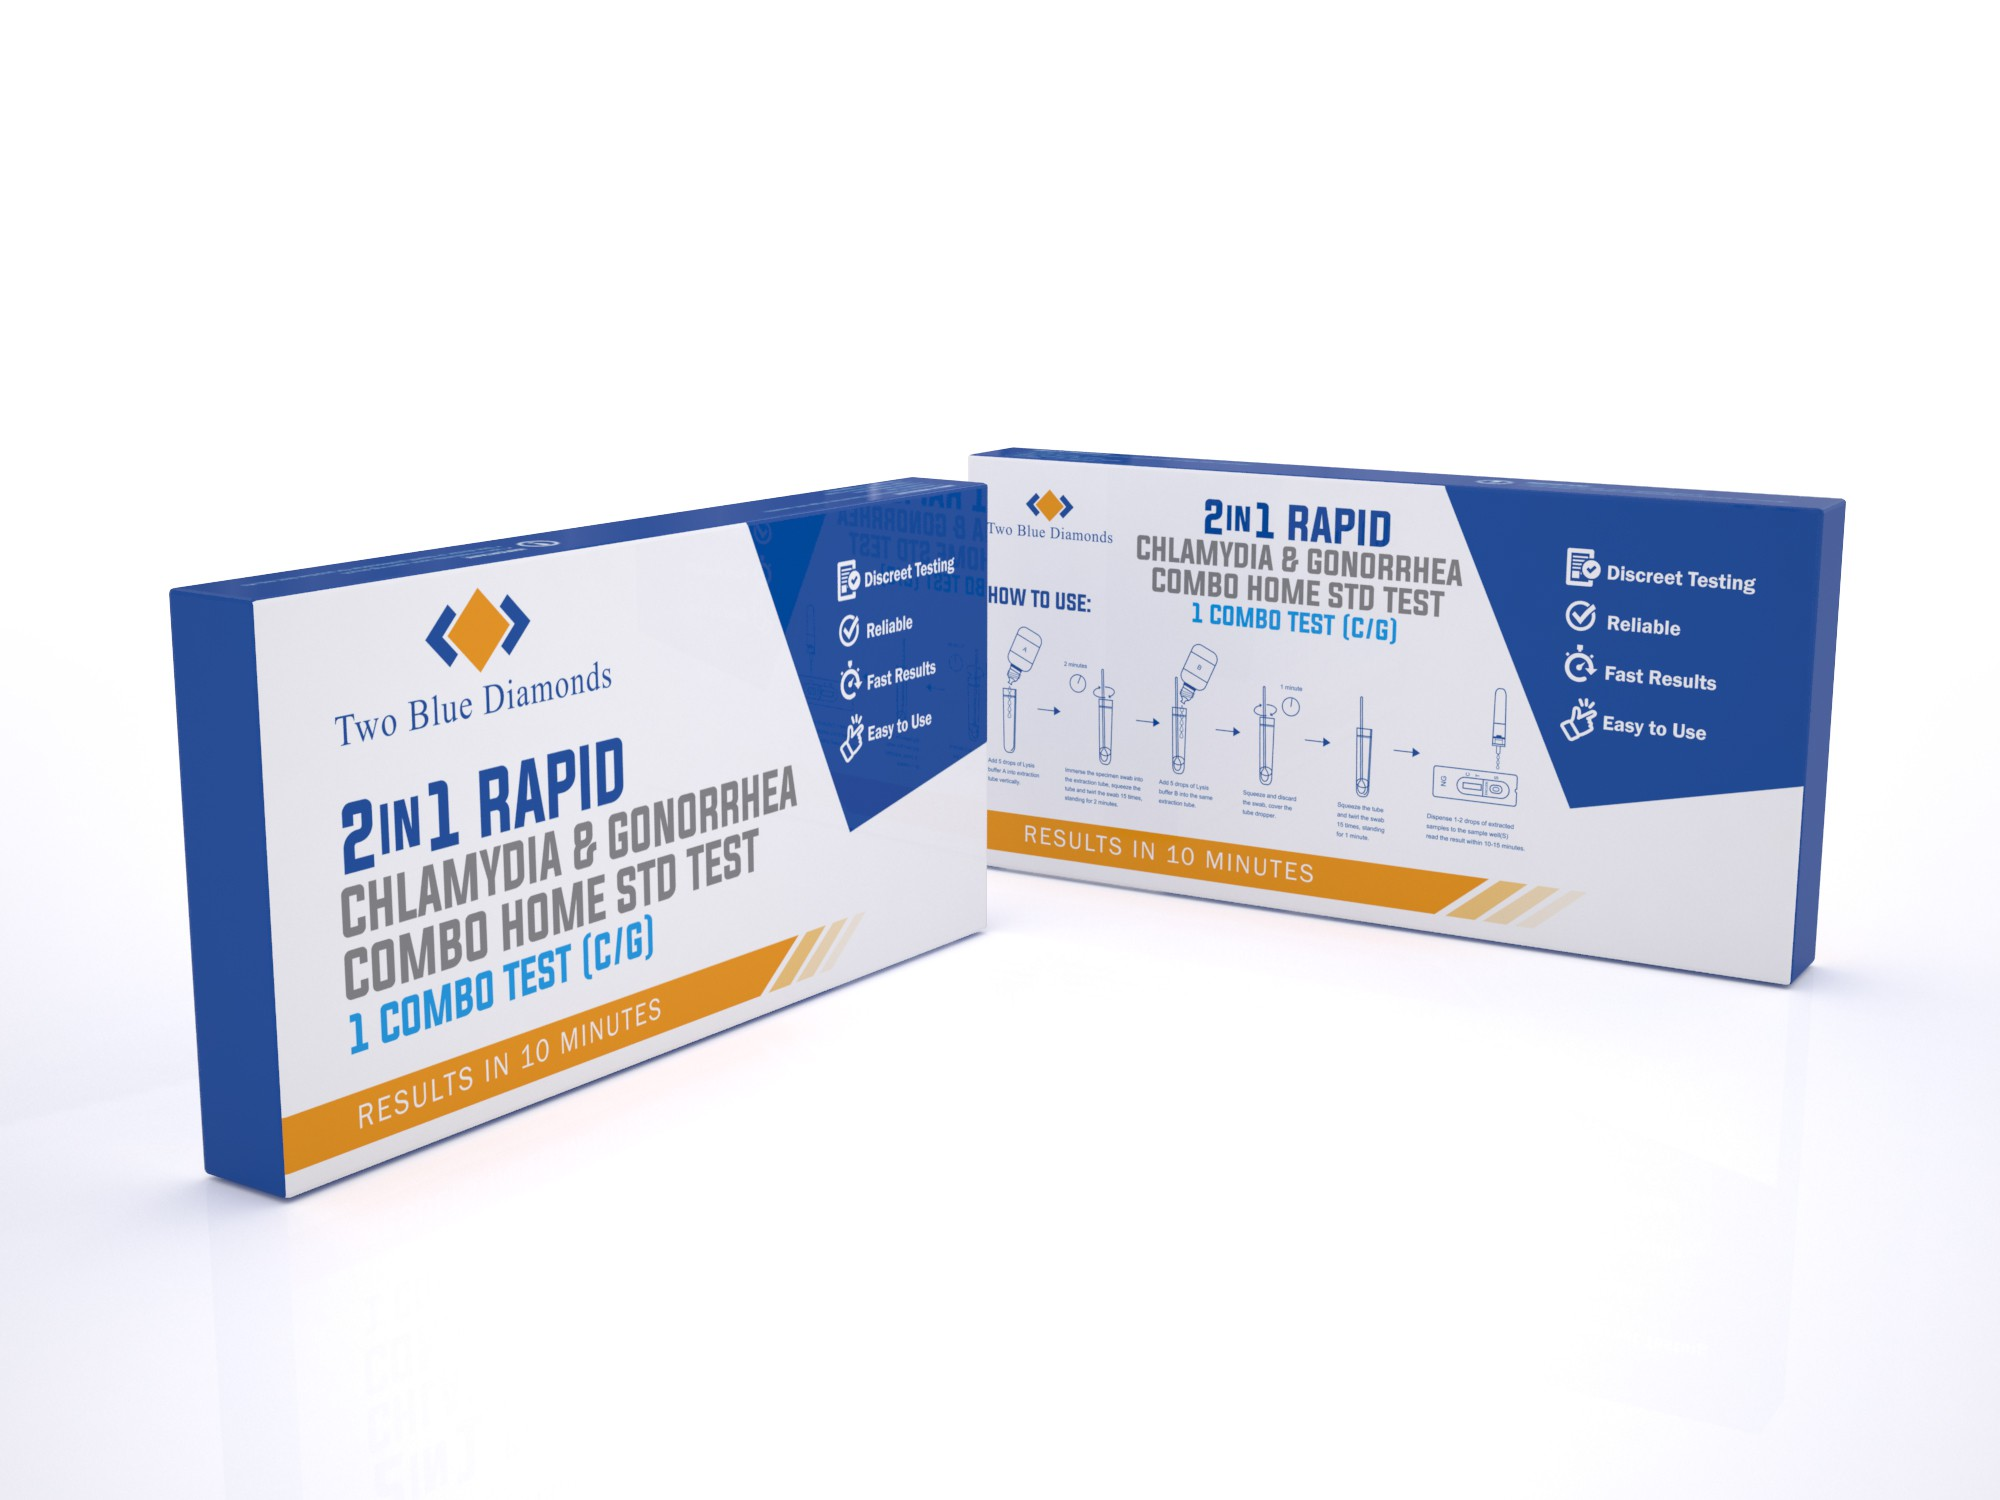 At Home Single STD Combo Test Kit Box (Chlamydia/Gonorrhea)